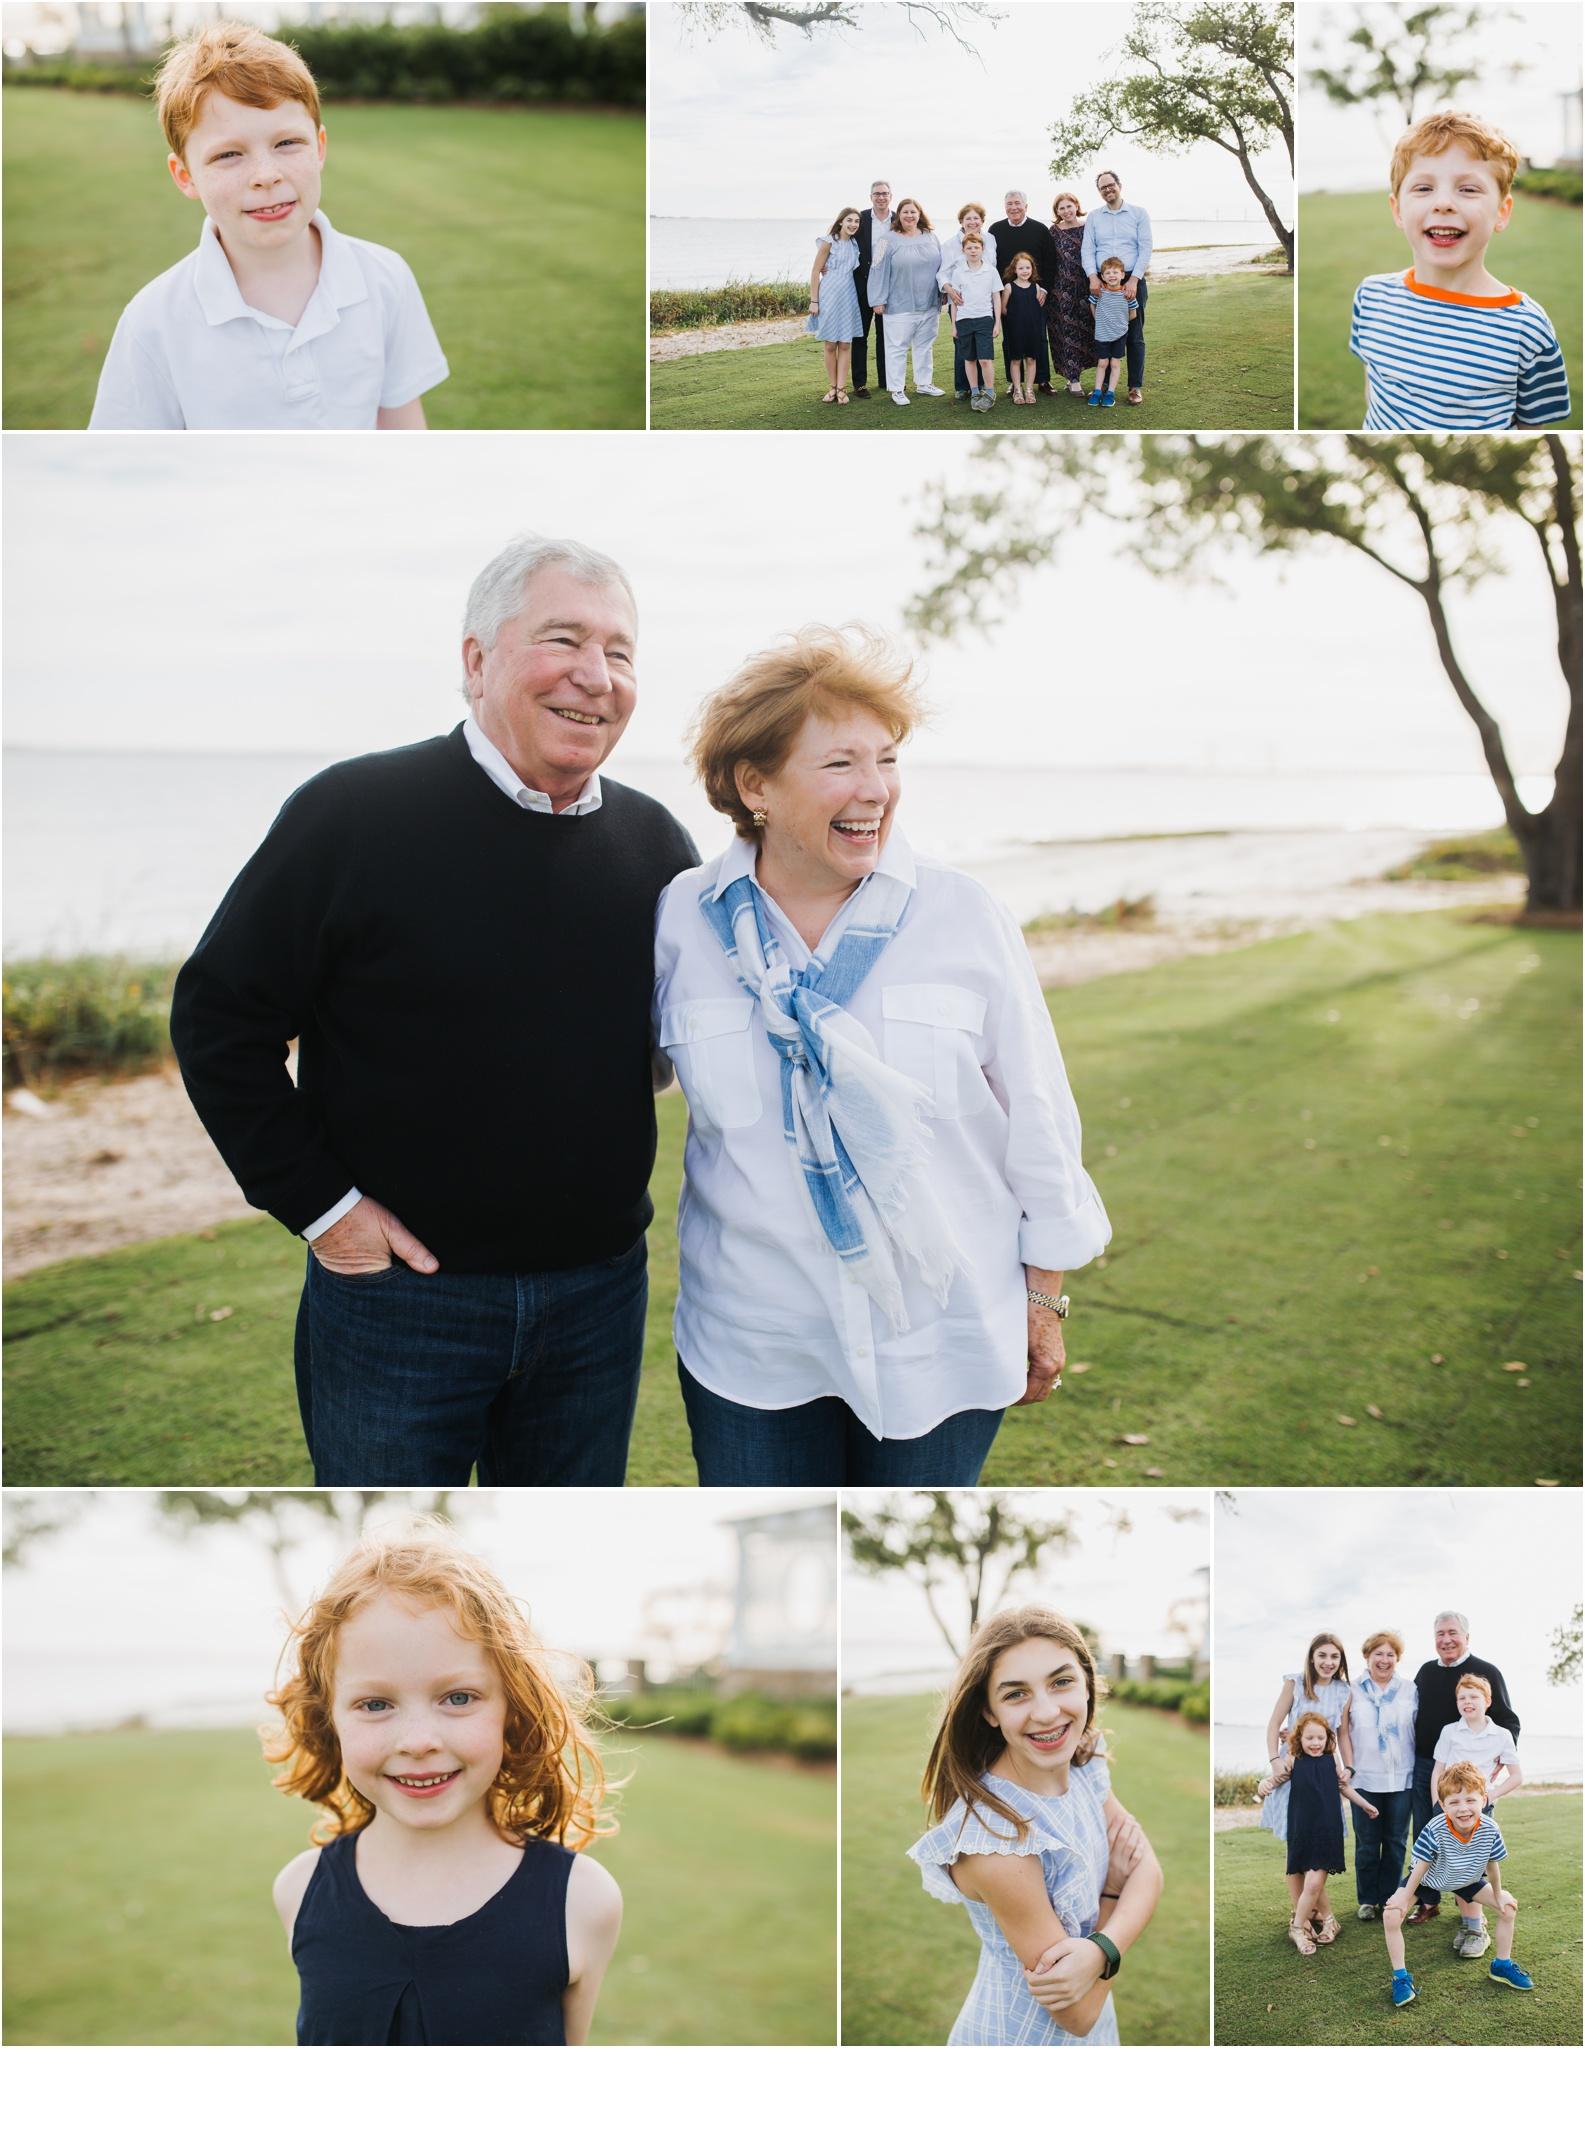 Rainey_Gregg_Photography_St._Simons_Island_Georgia_California_Wedding_Portrait_Photography_1758.jpg